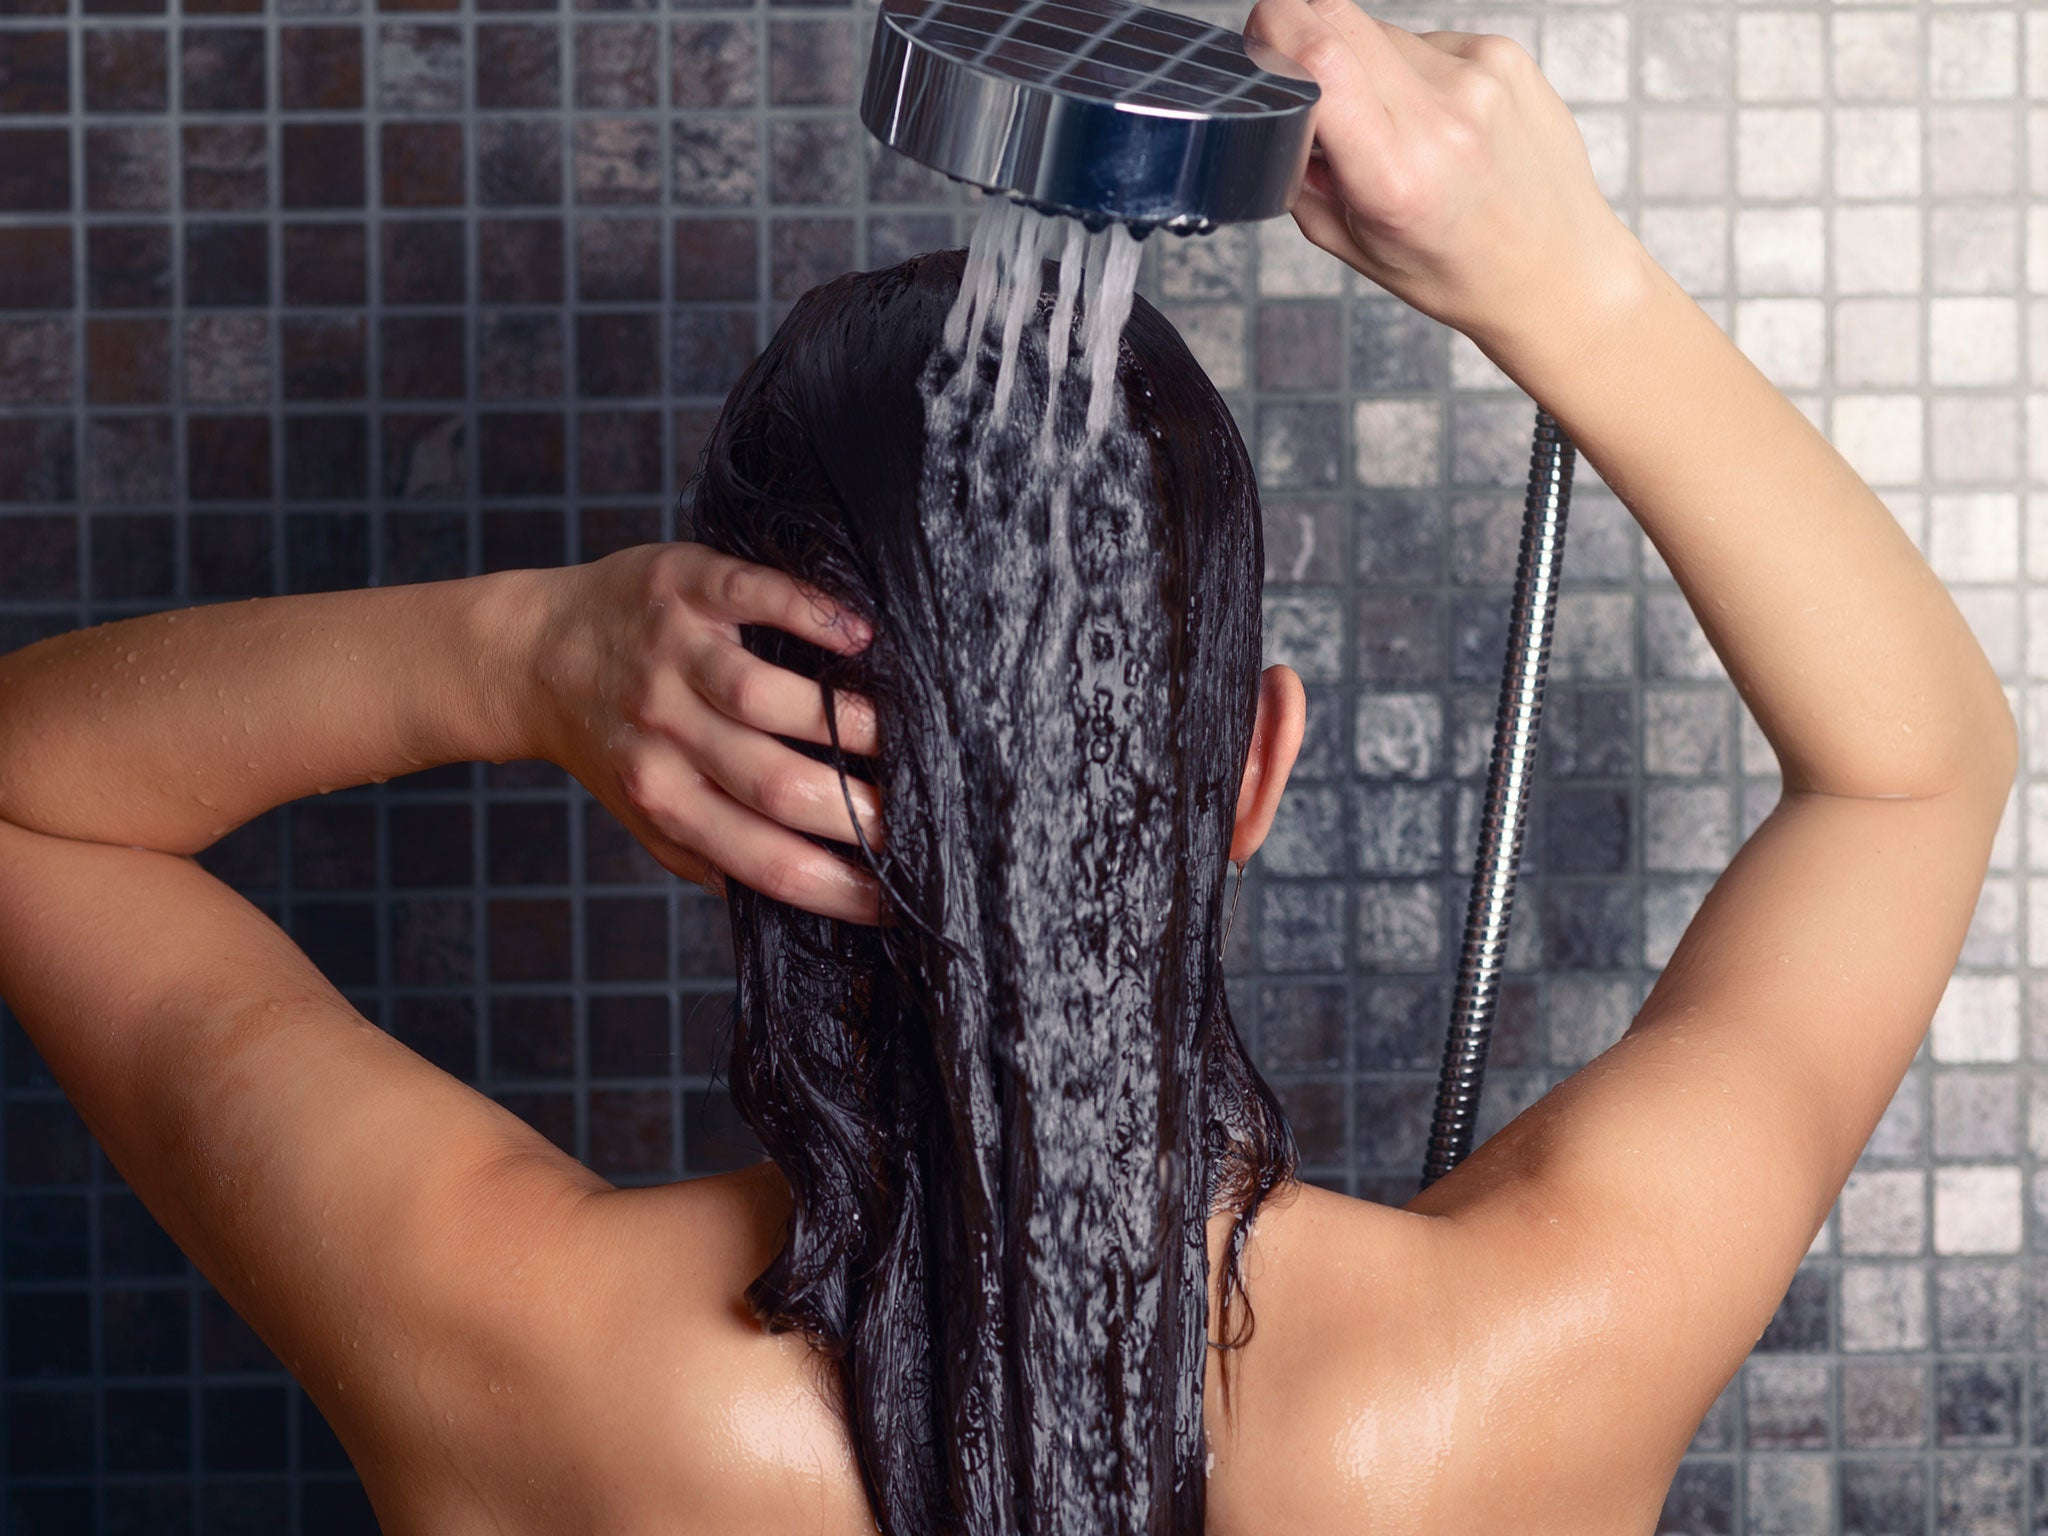 Is showering everyday bad for you? New research says yes | The